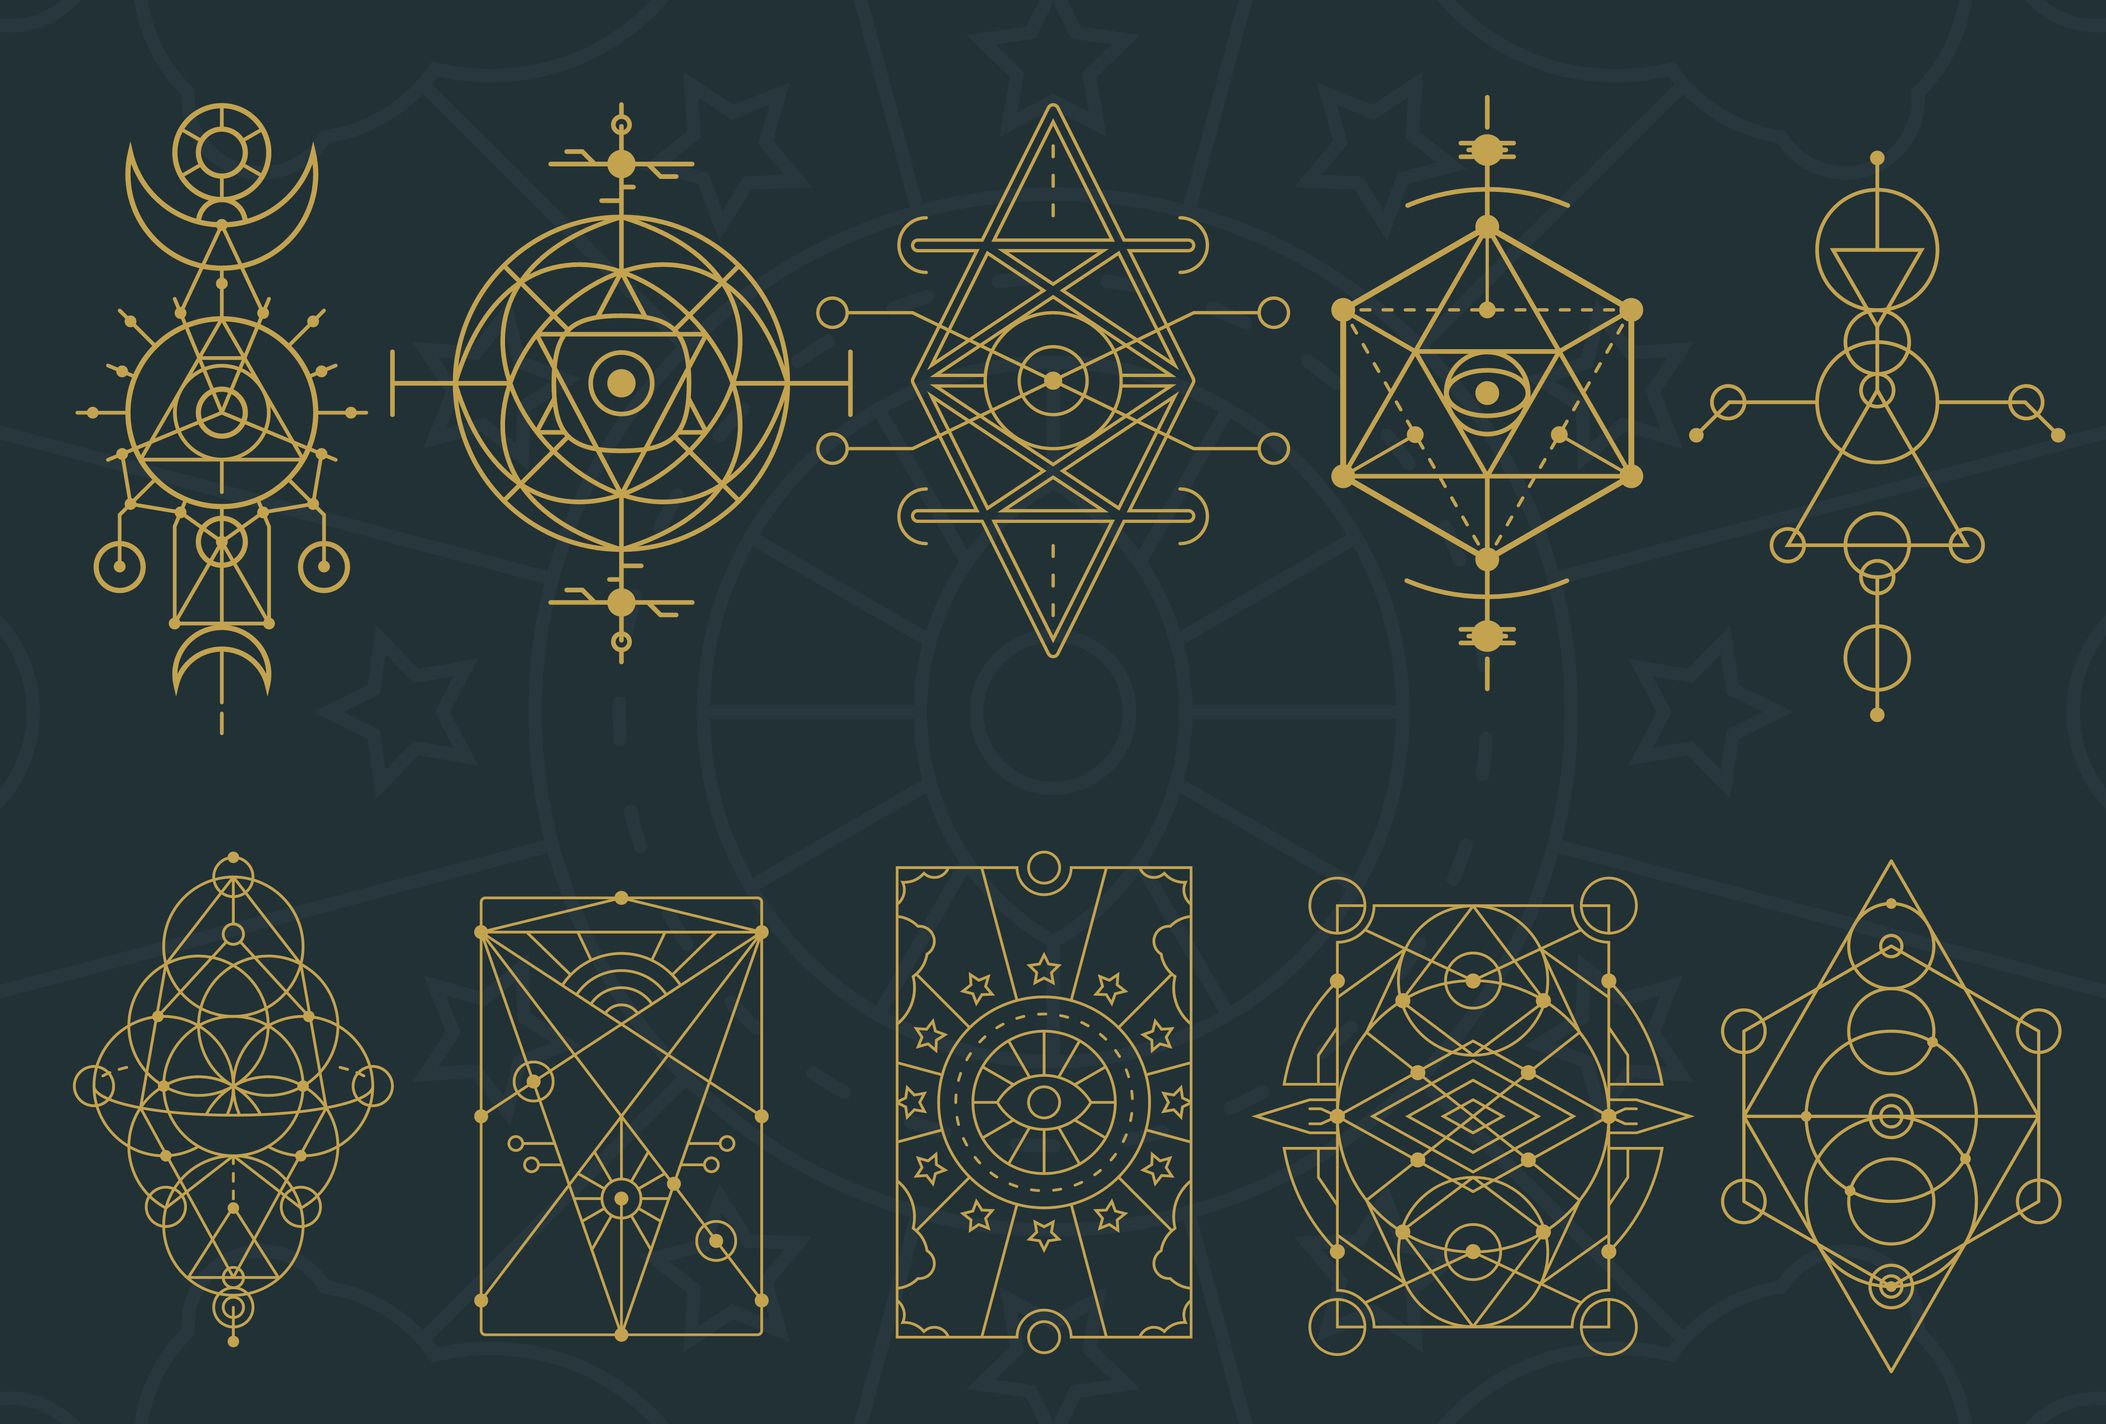 As Above So Below Occult Phrase